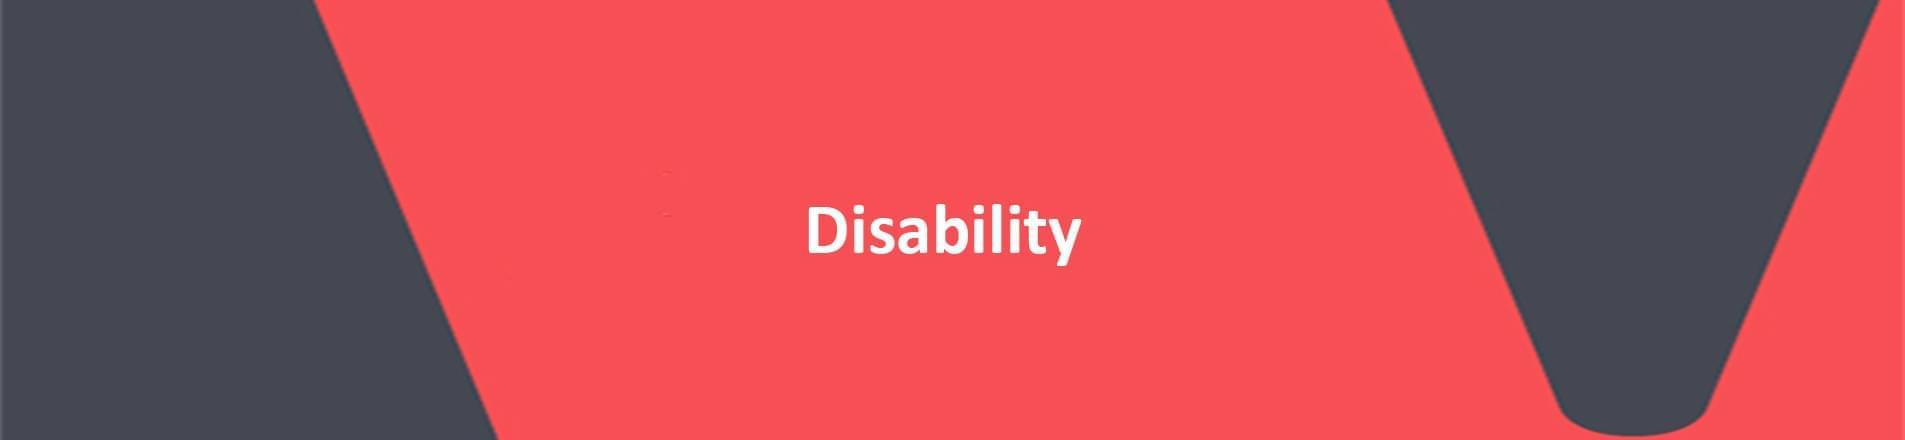 Image of the word disability